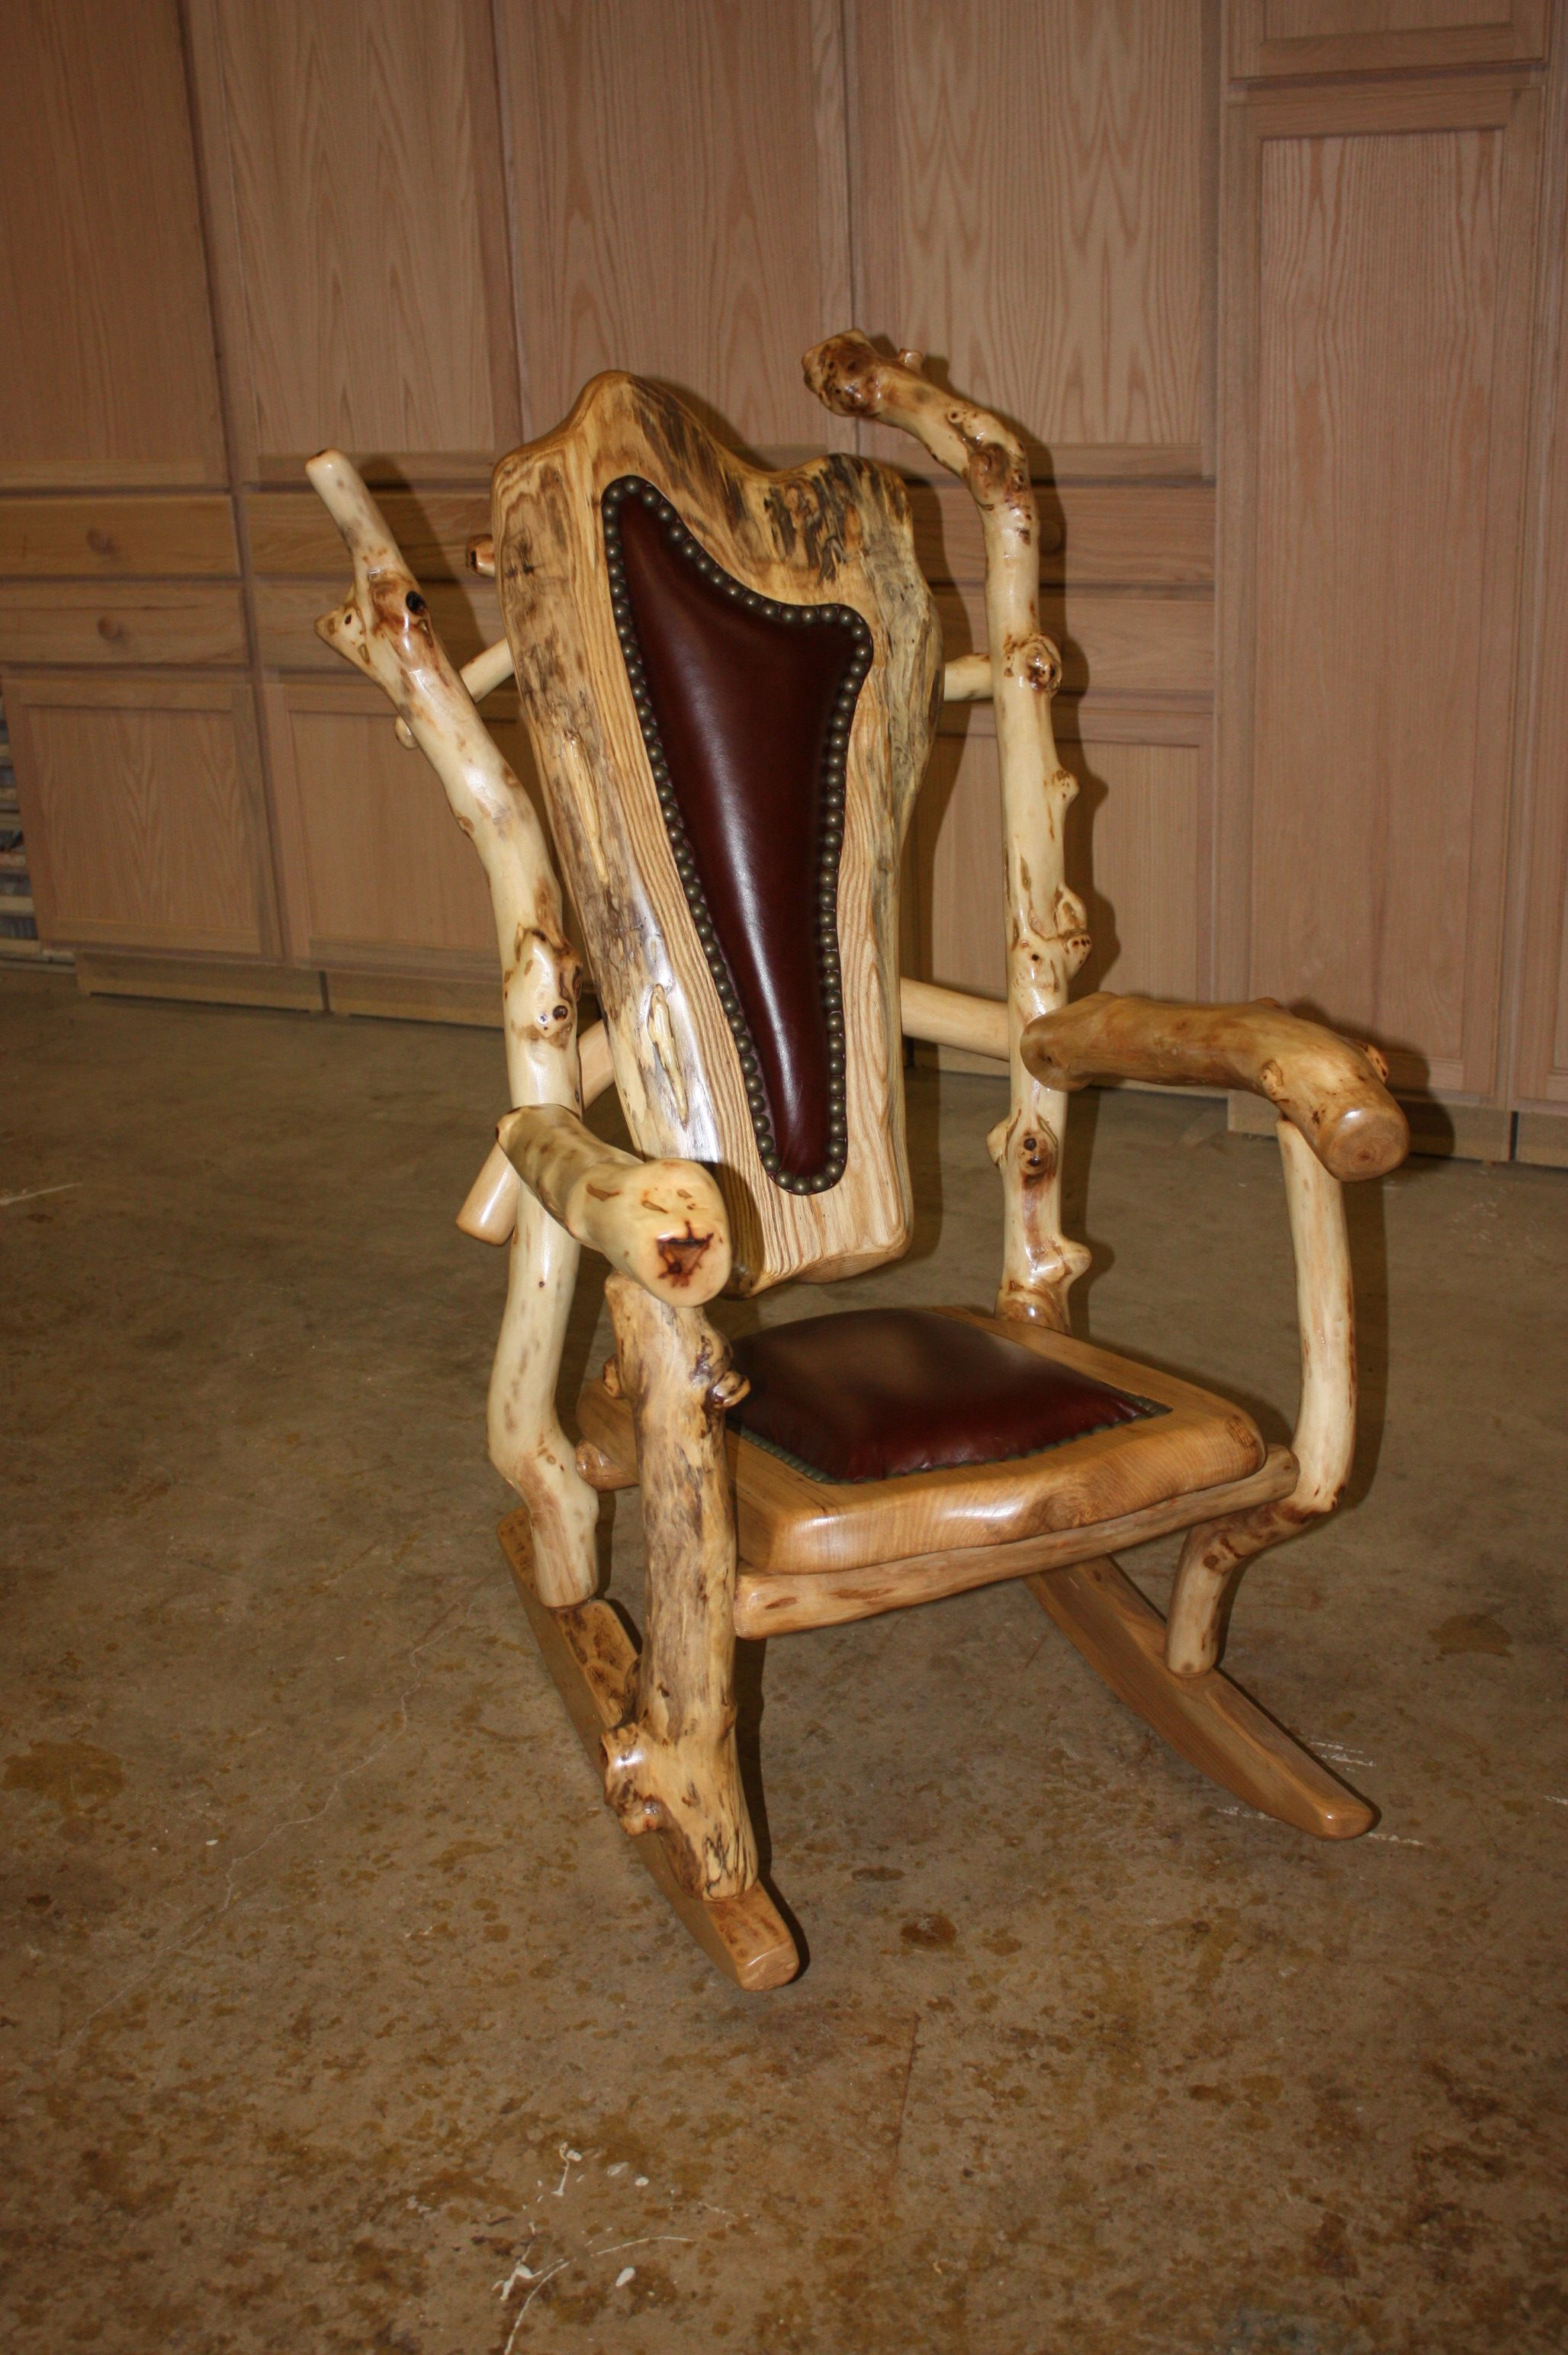 Unique log furniture one awesome chair I good surely see it on the